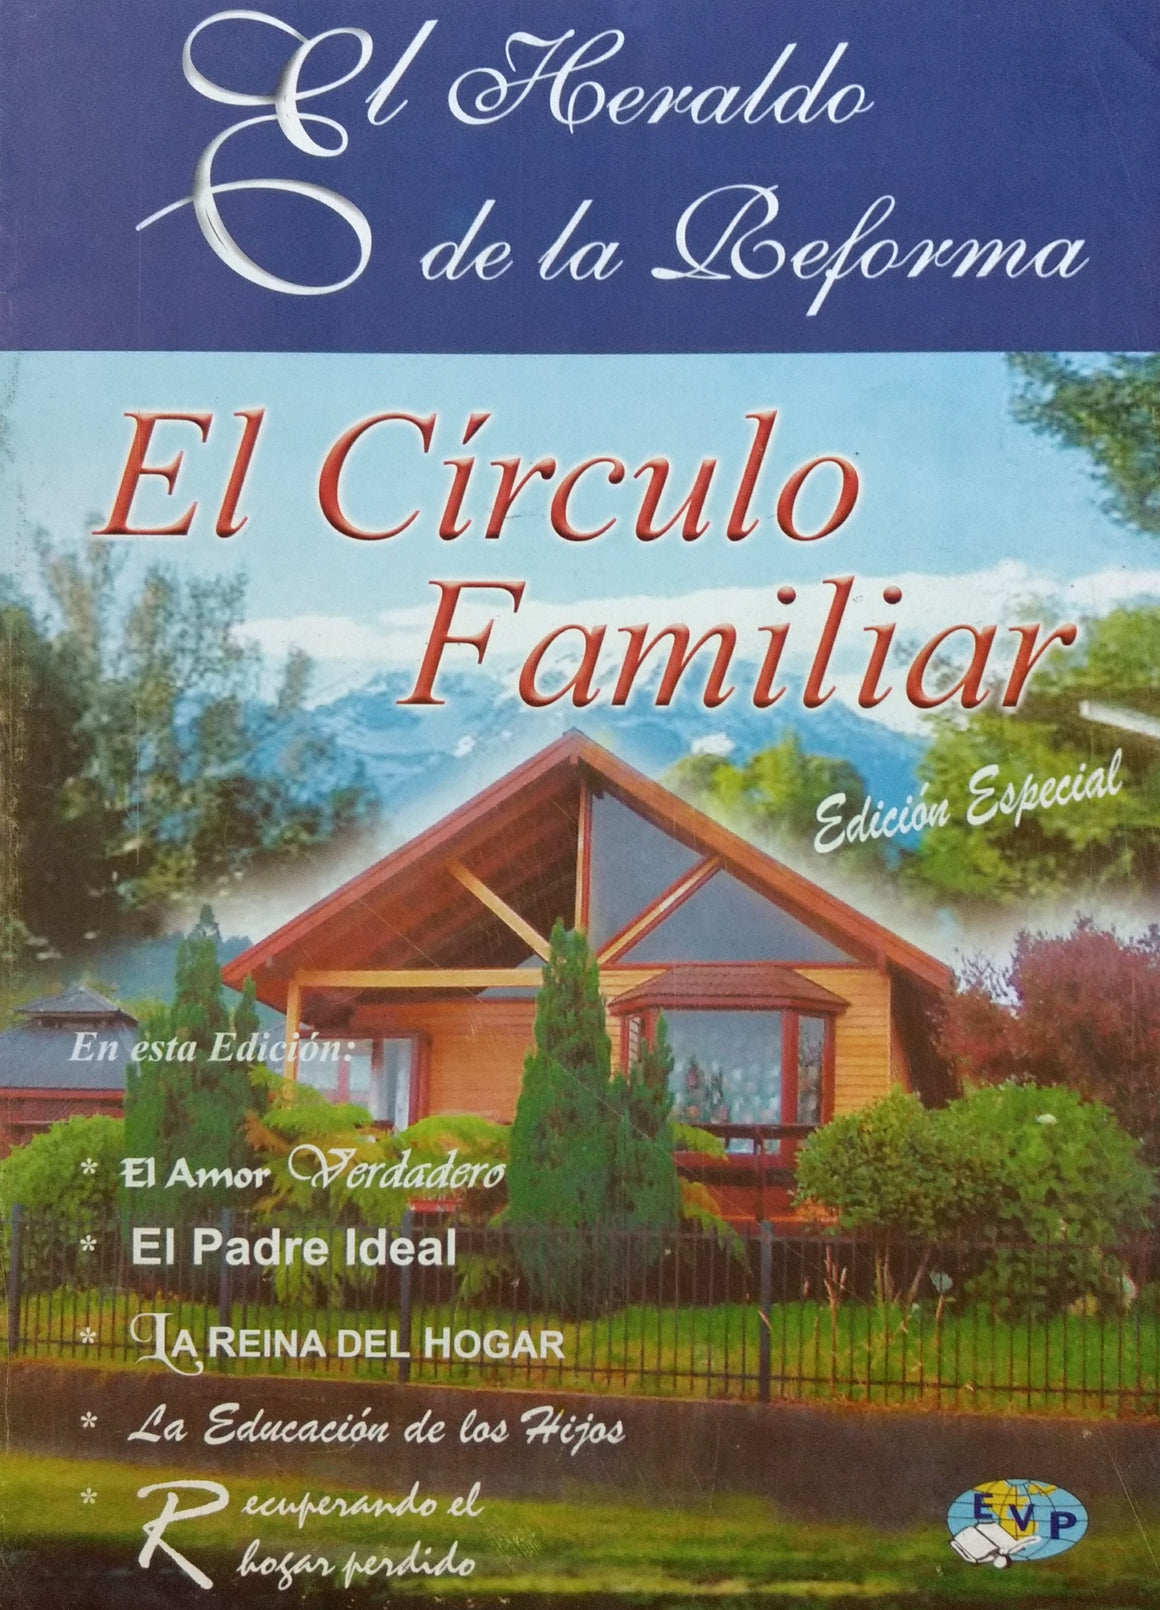 El Circulo Familiar (Revista)